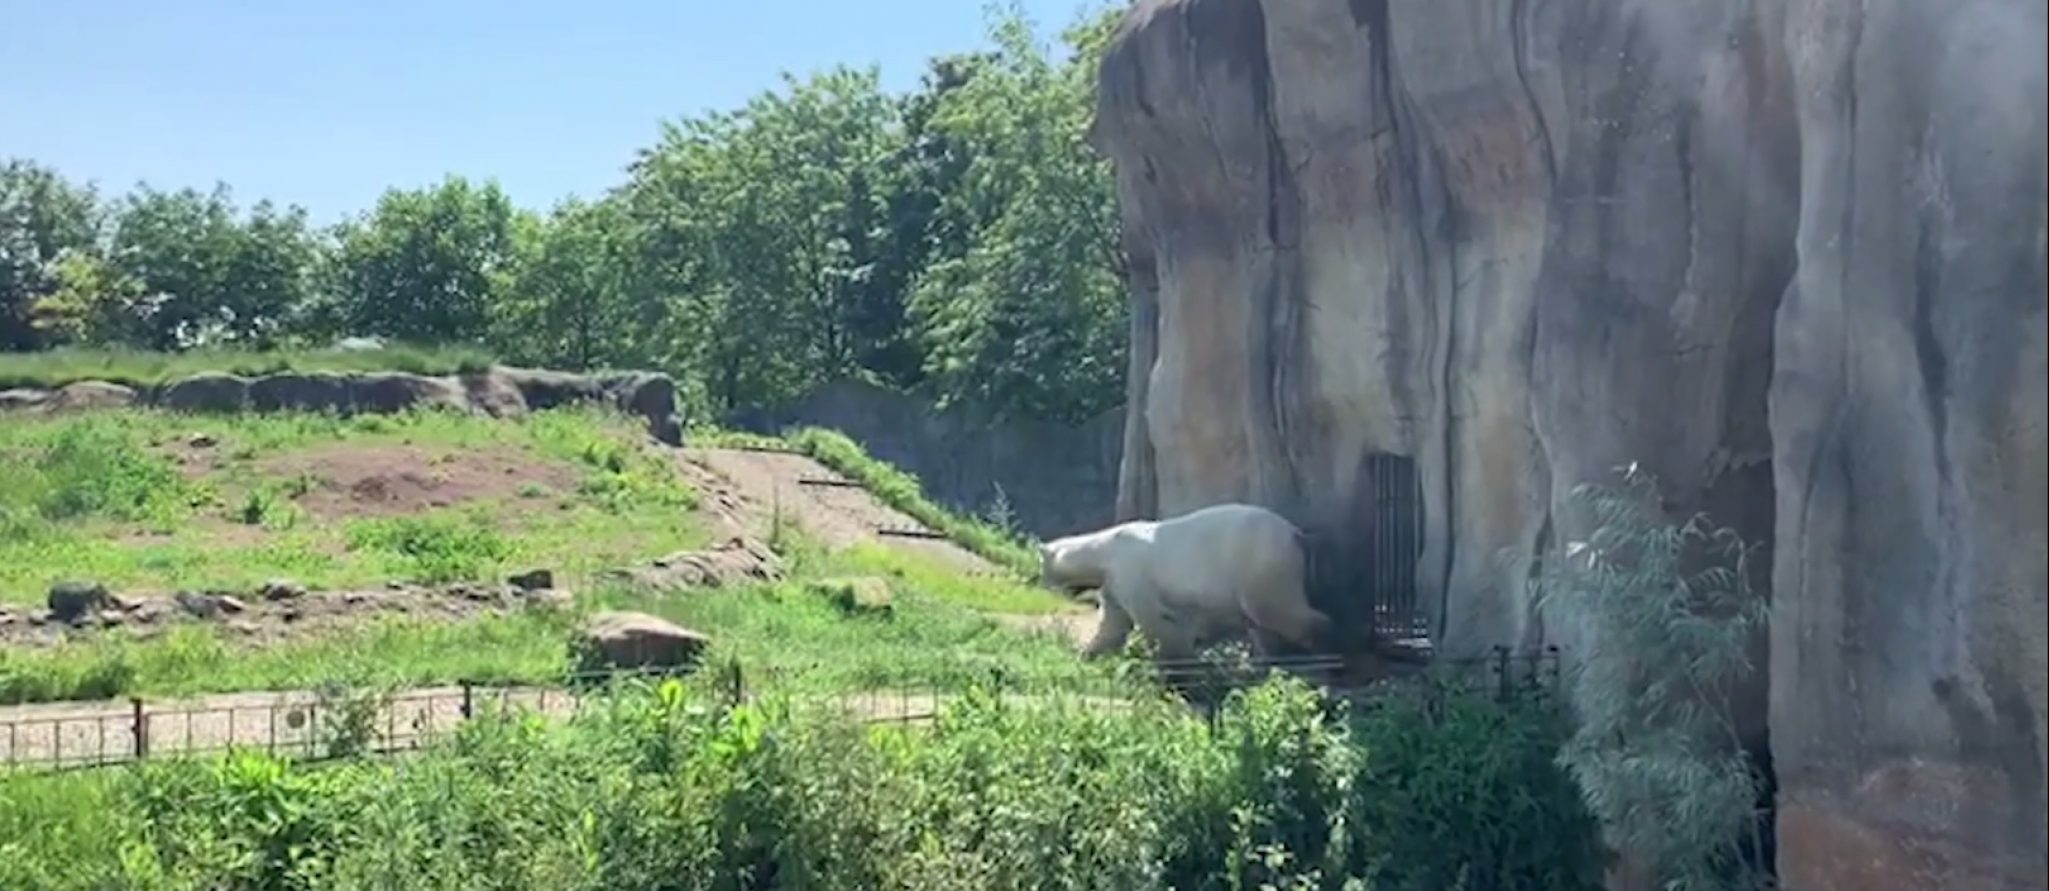 polar bear man Wolodja arrives in Rotetrdam Zoo